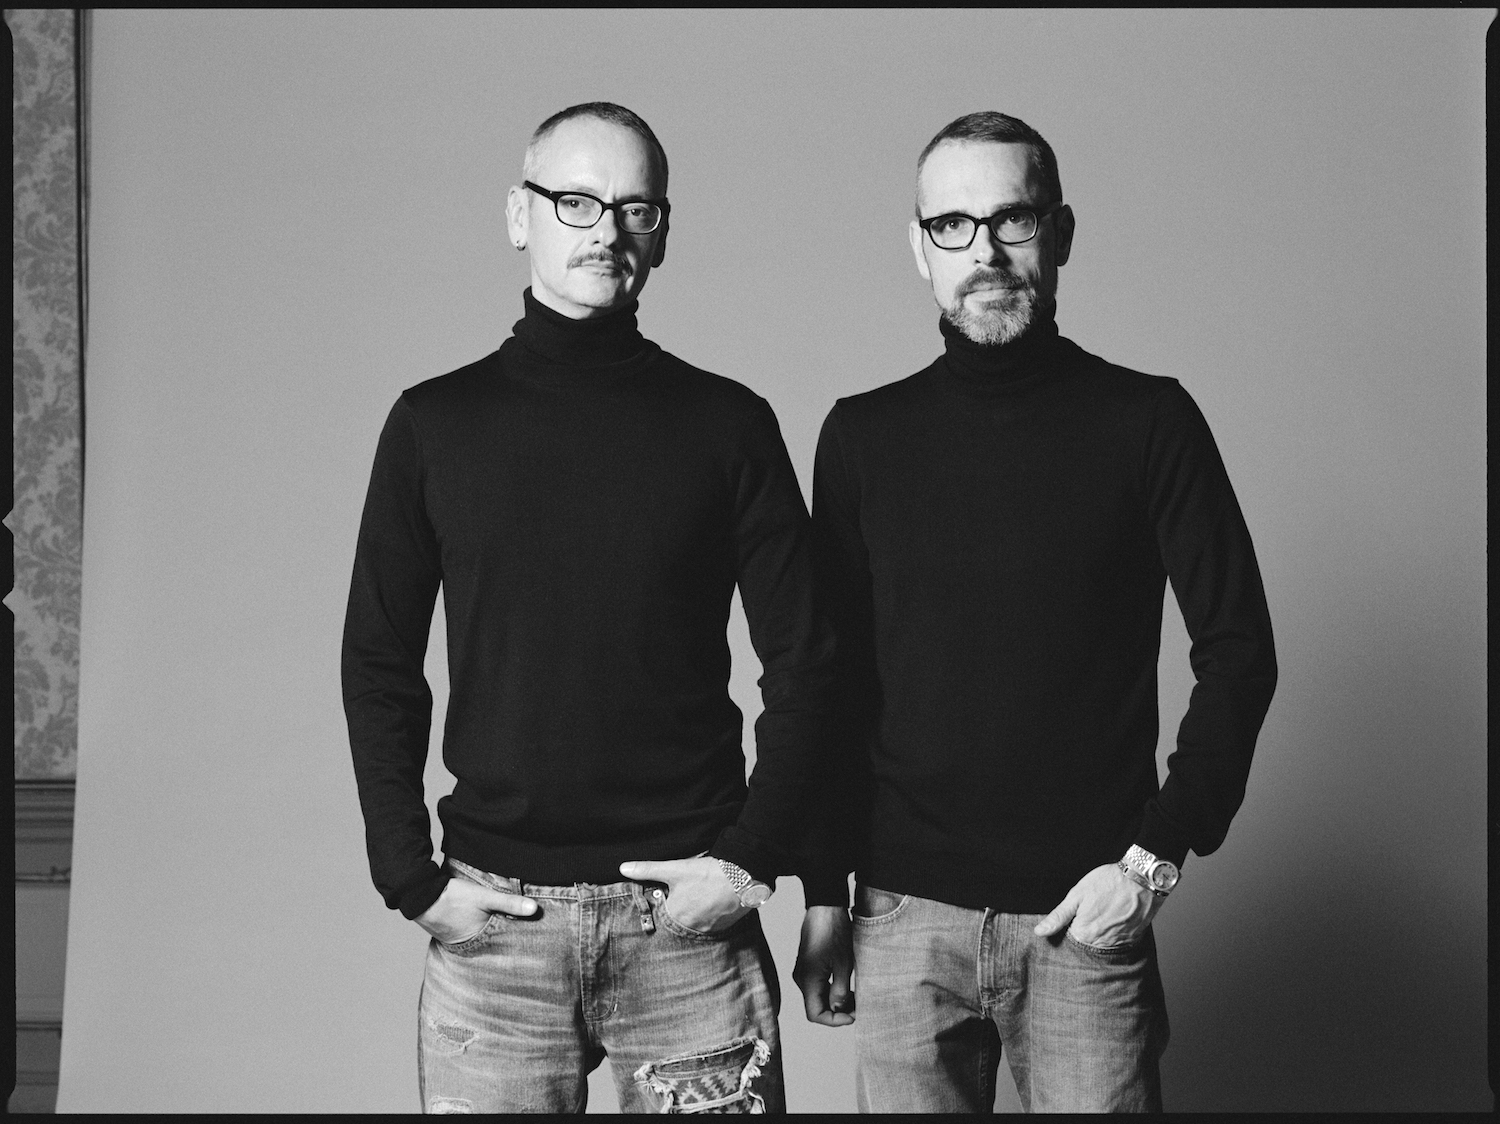 Design Veterans Viktor Rolf On Lingerie And Why Sustainability Is The Future Of Fashion